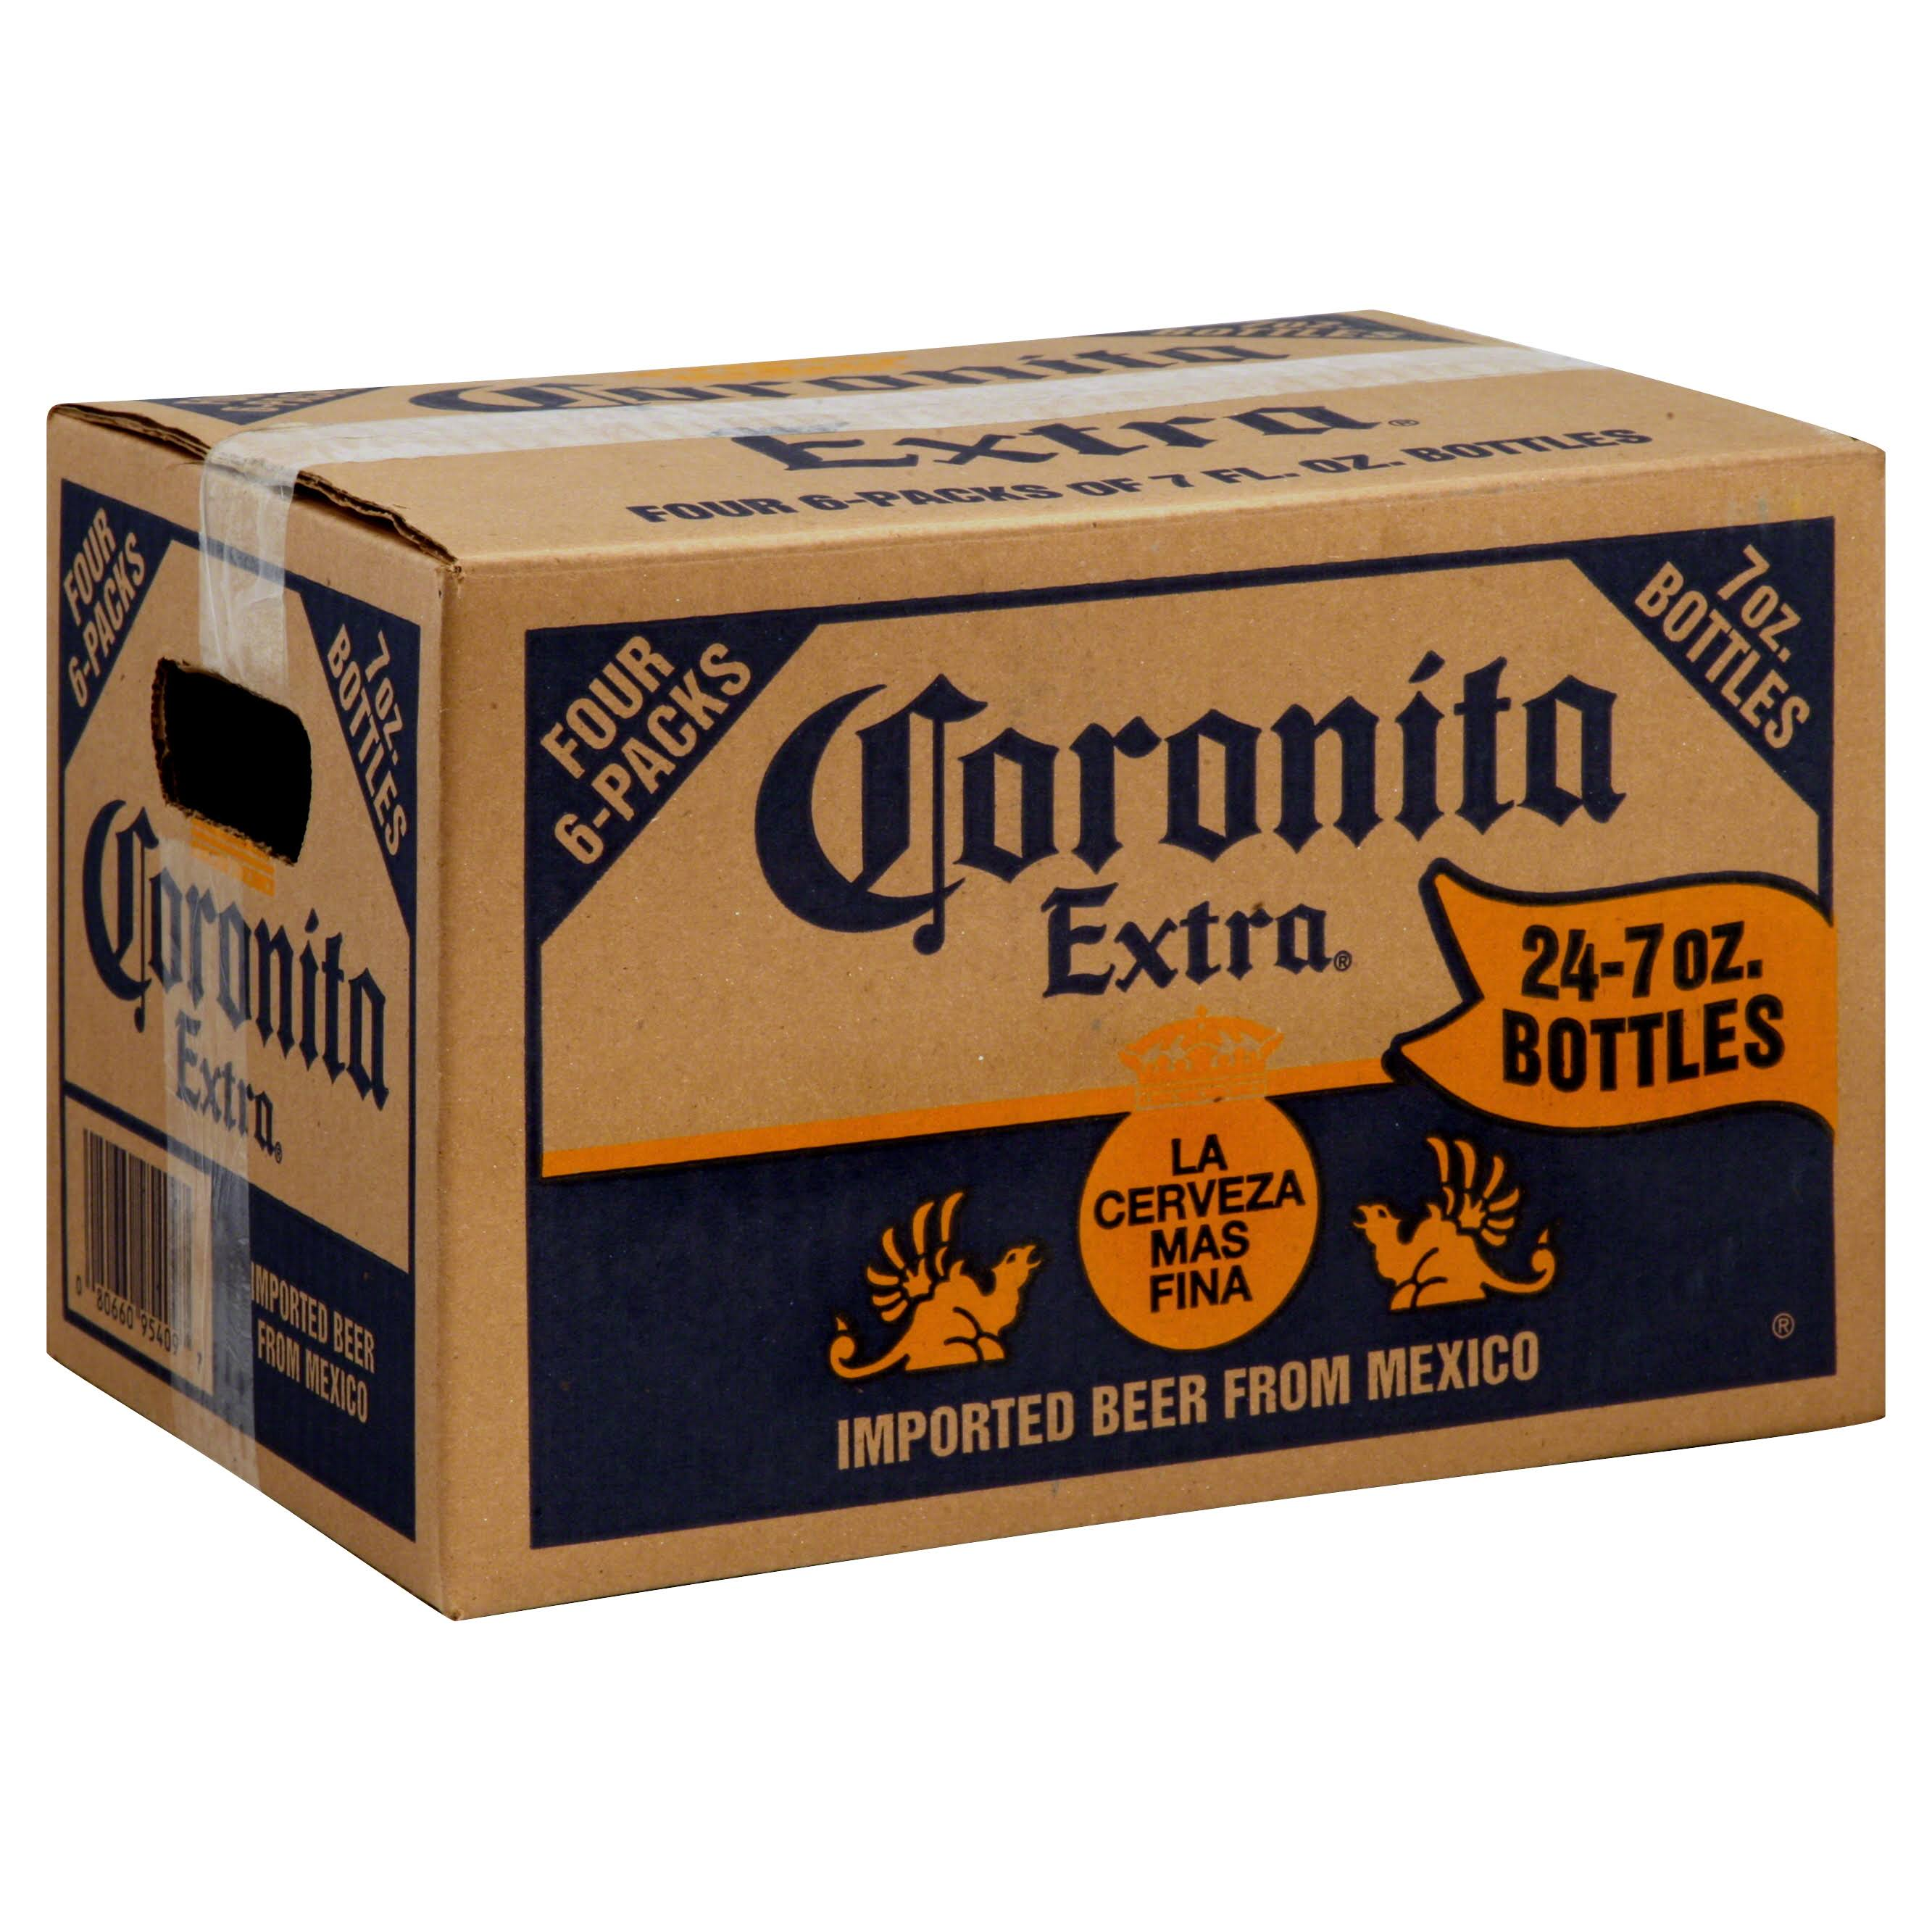 Coronita Extra Beer - 24 pack, 7 oz bottles